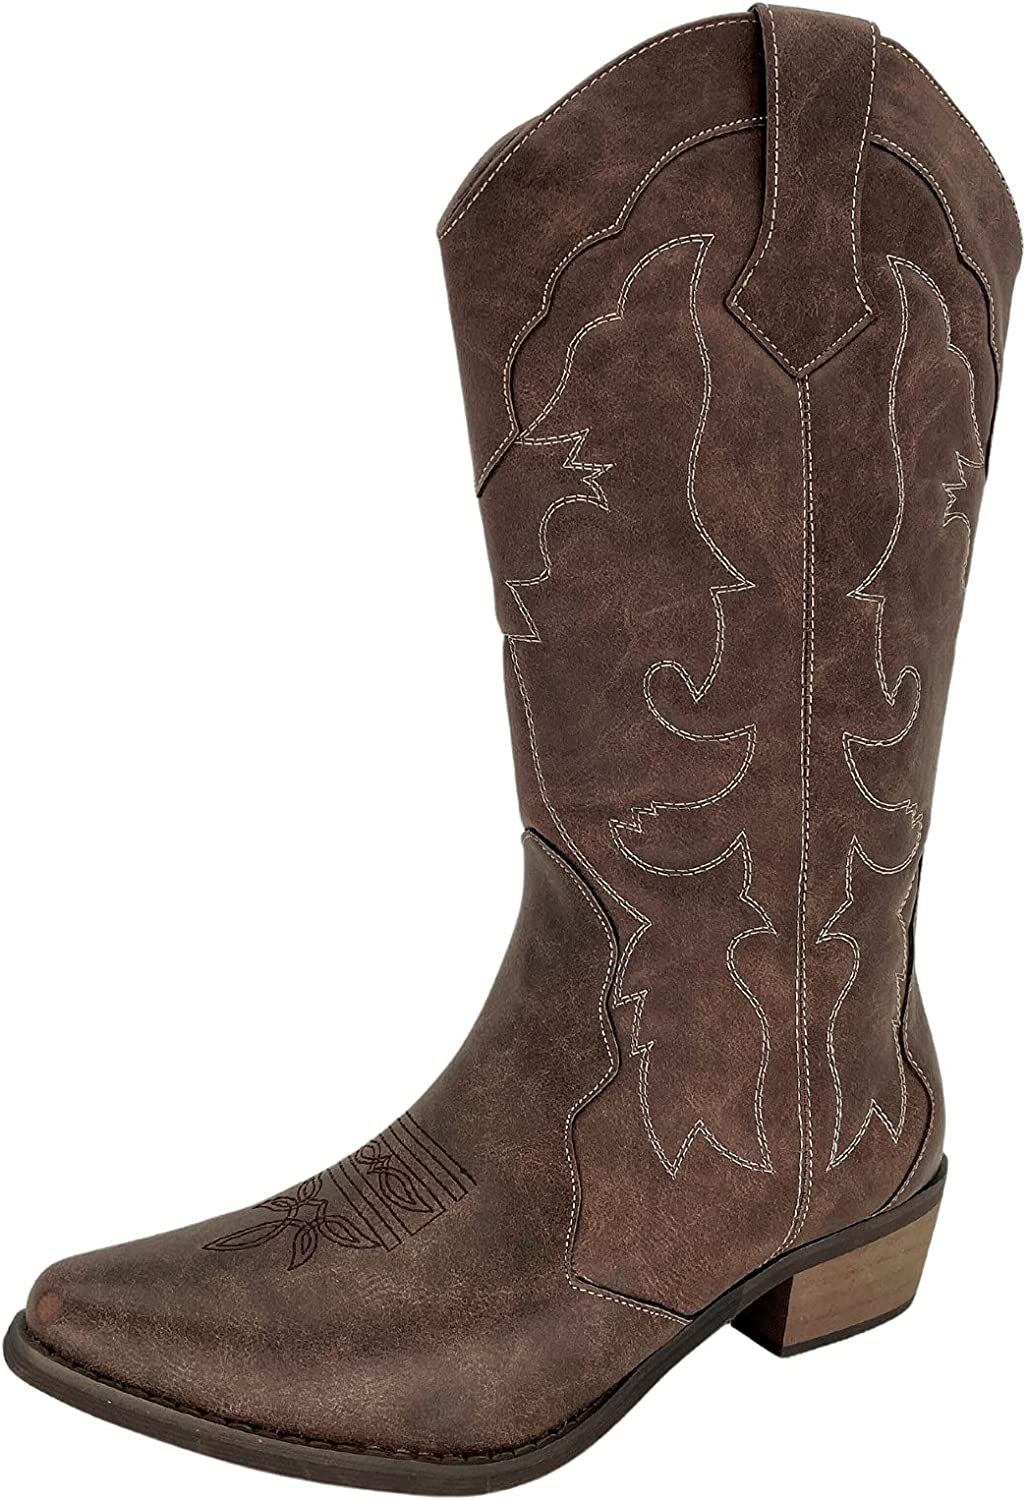 Womens Cowgirl Cowboy Boots Wide Calf Snip Toe Western Wedding Shoes